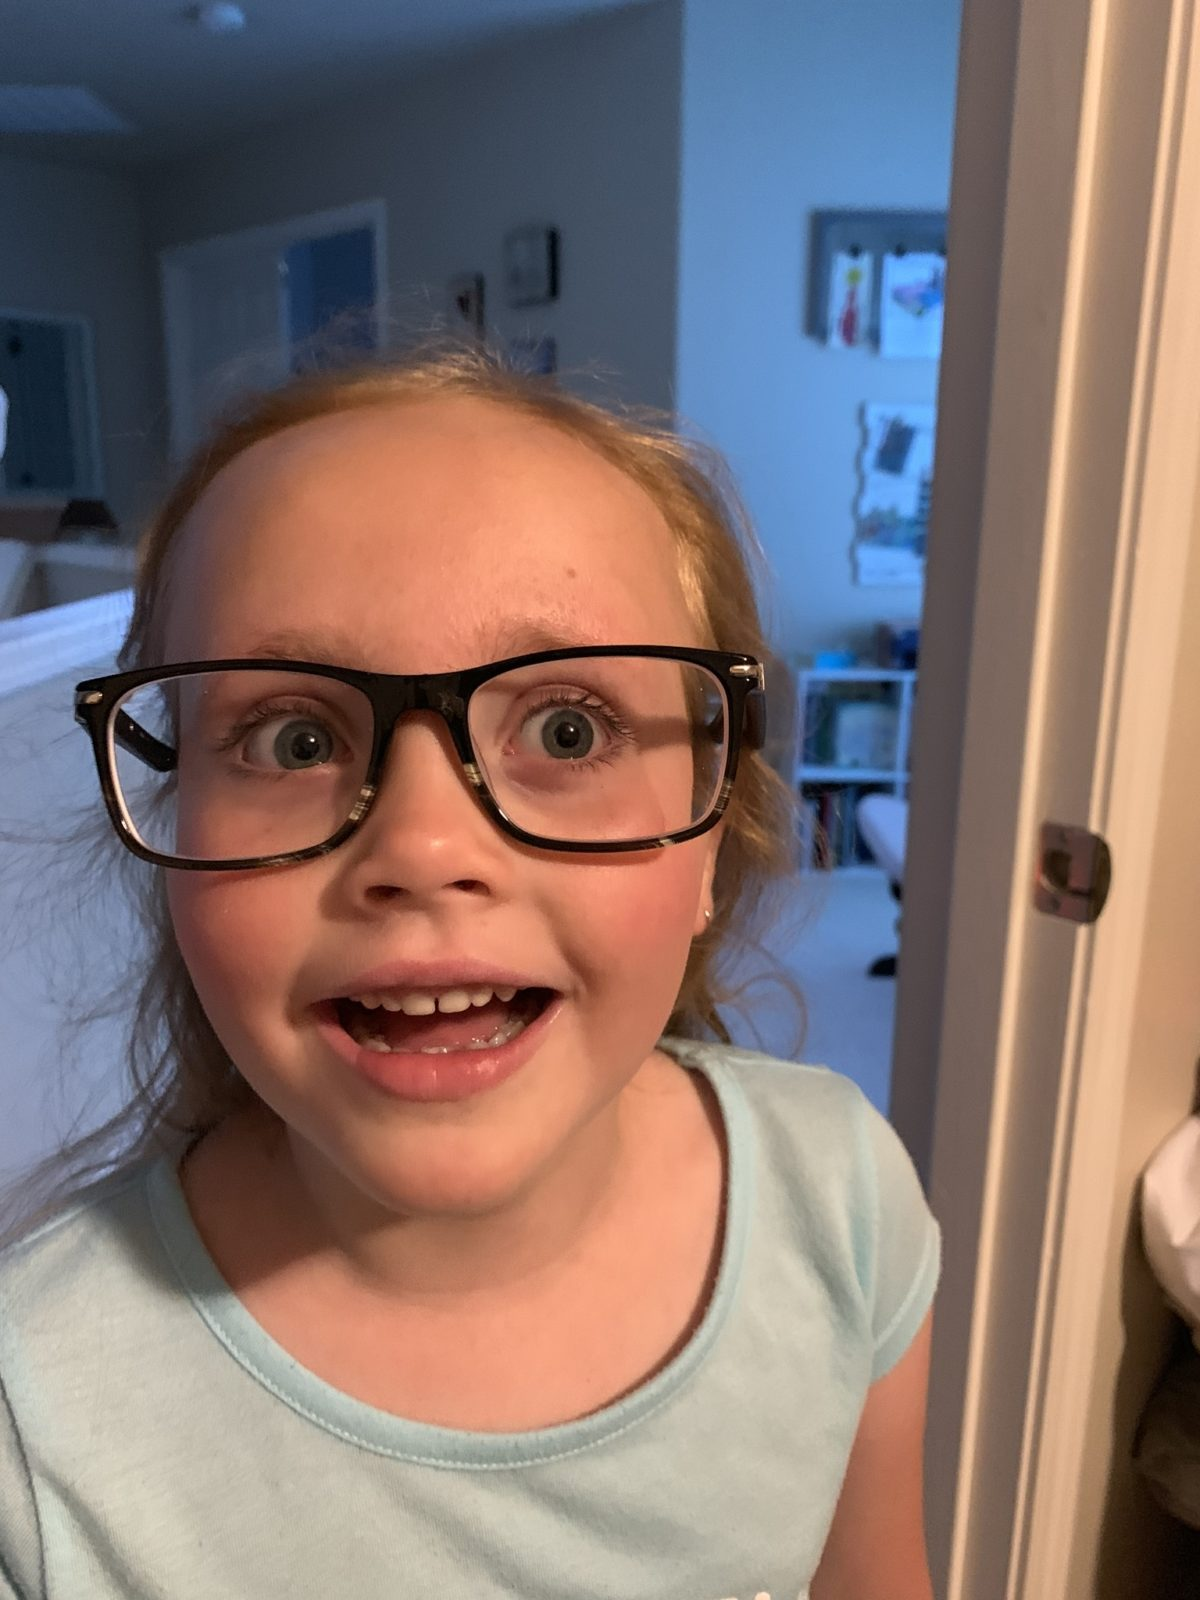 Trying Daddy's glasses